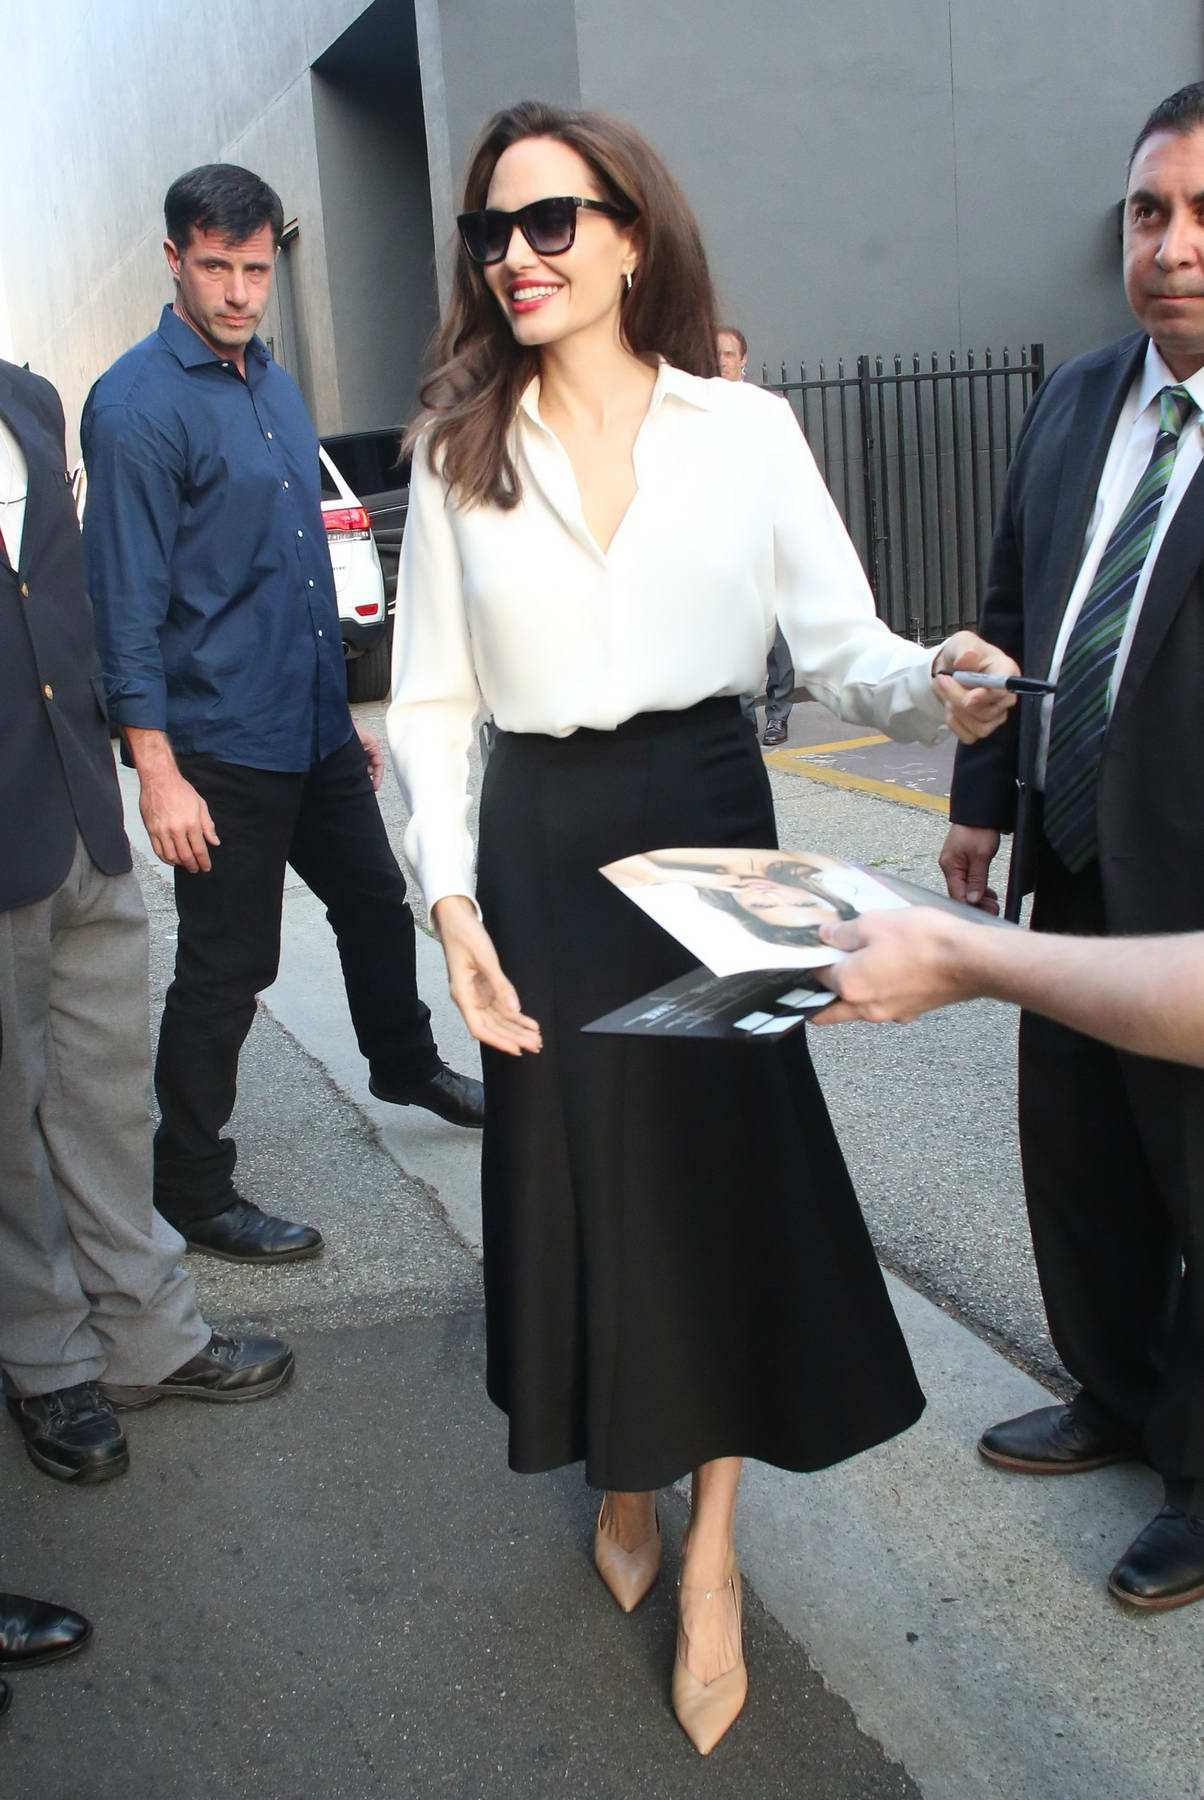 Angelina Jolie leaving the Q&A at the Academy of Motion Arts in Los Angeles